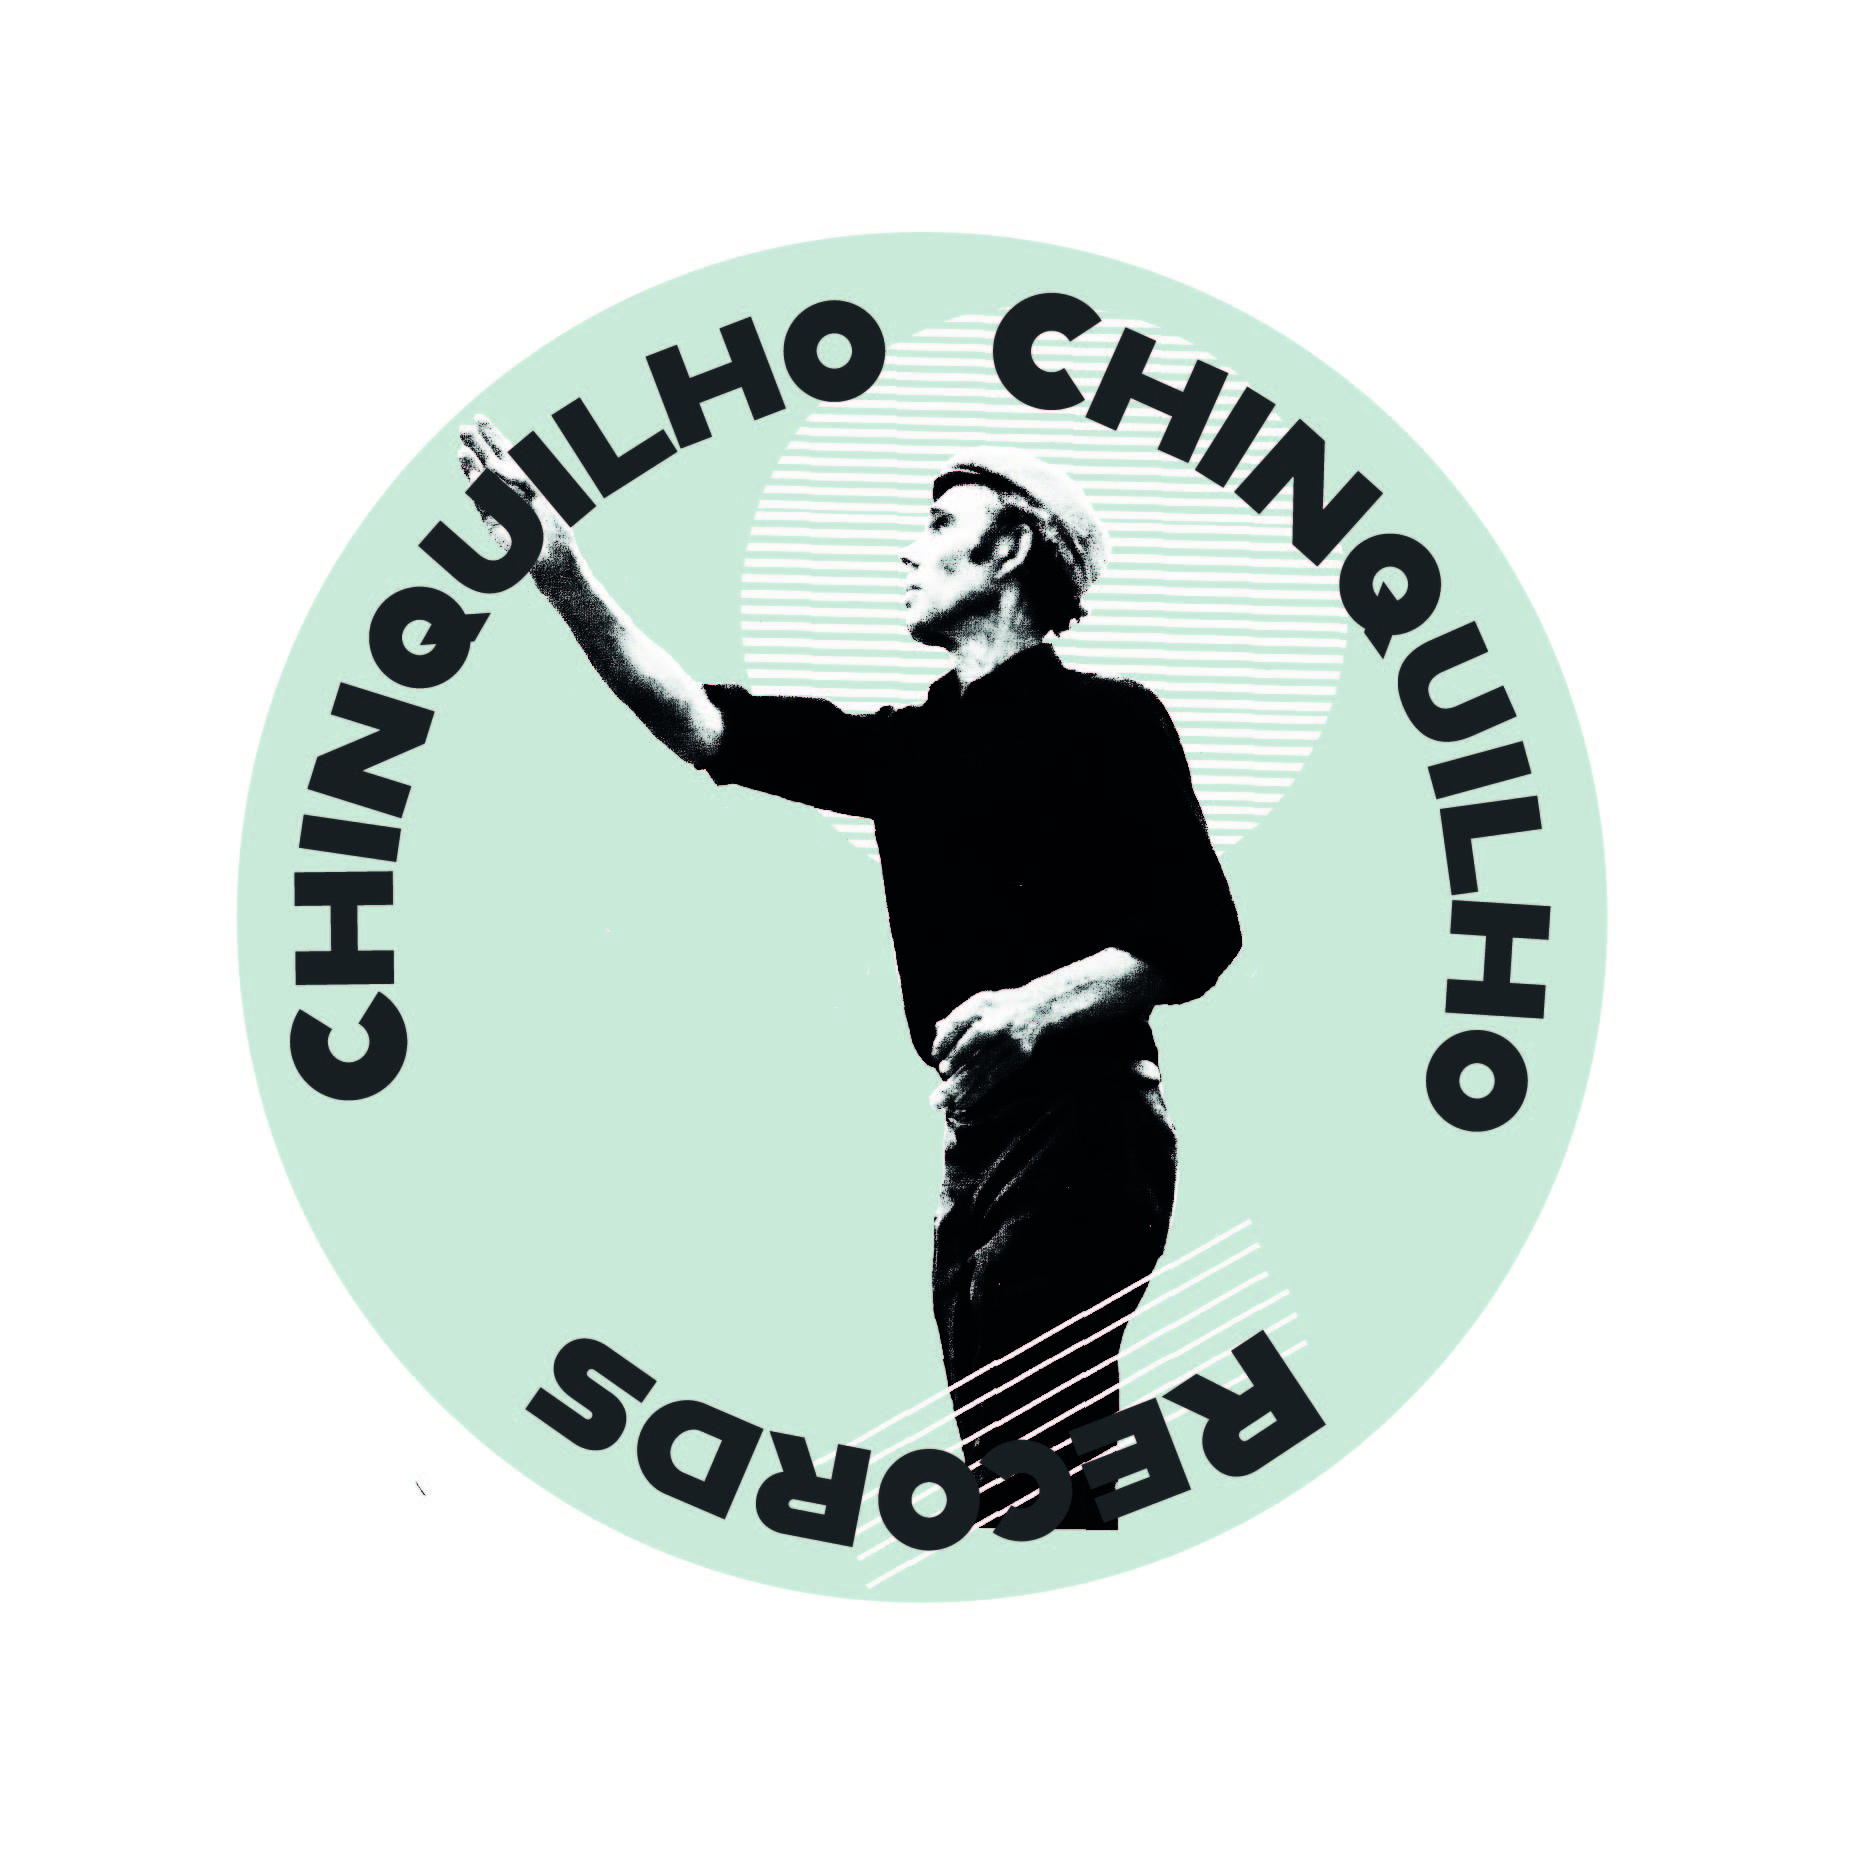 "it is a circular logo. The background is a pale mint green. In the centre is a black & white photo of a man throwing something. Behind his head is a circle made up of white lines, & in front of his legs are white diagonal lines. At the top of the logo is the word ""Chinquilho"" repeated twice & at the bottom the word ""records"""